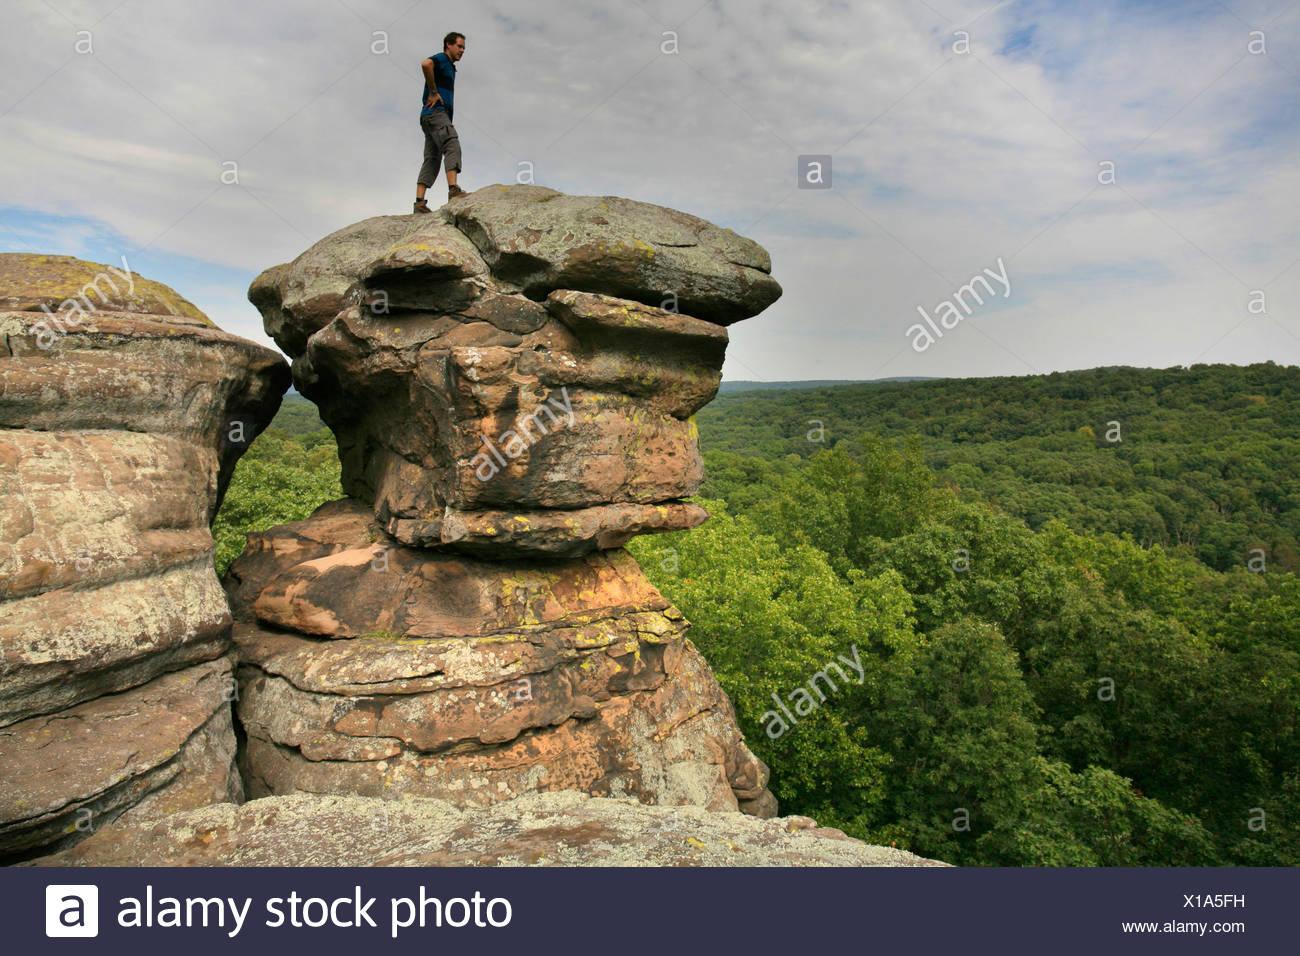 Hiker looking into the distance, sandstone rocks in the Garden of the Gods, Shawnee National Forest, Illinois, USA - Stock Image